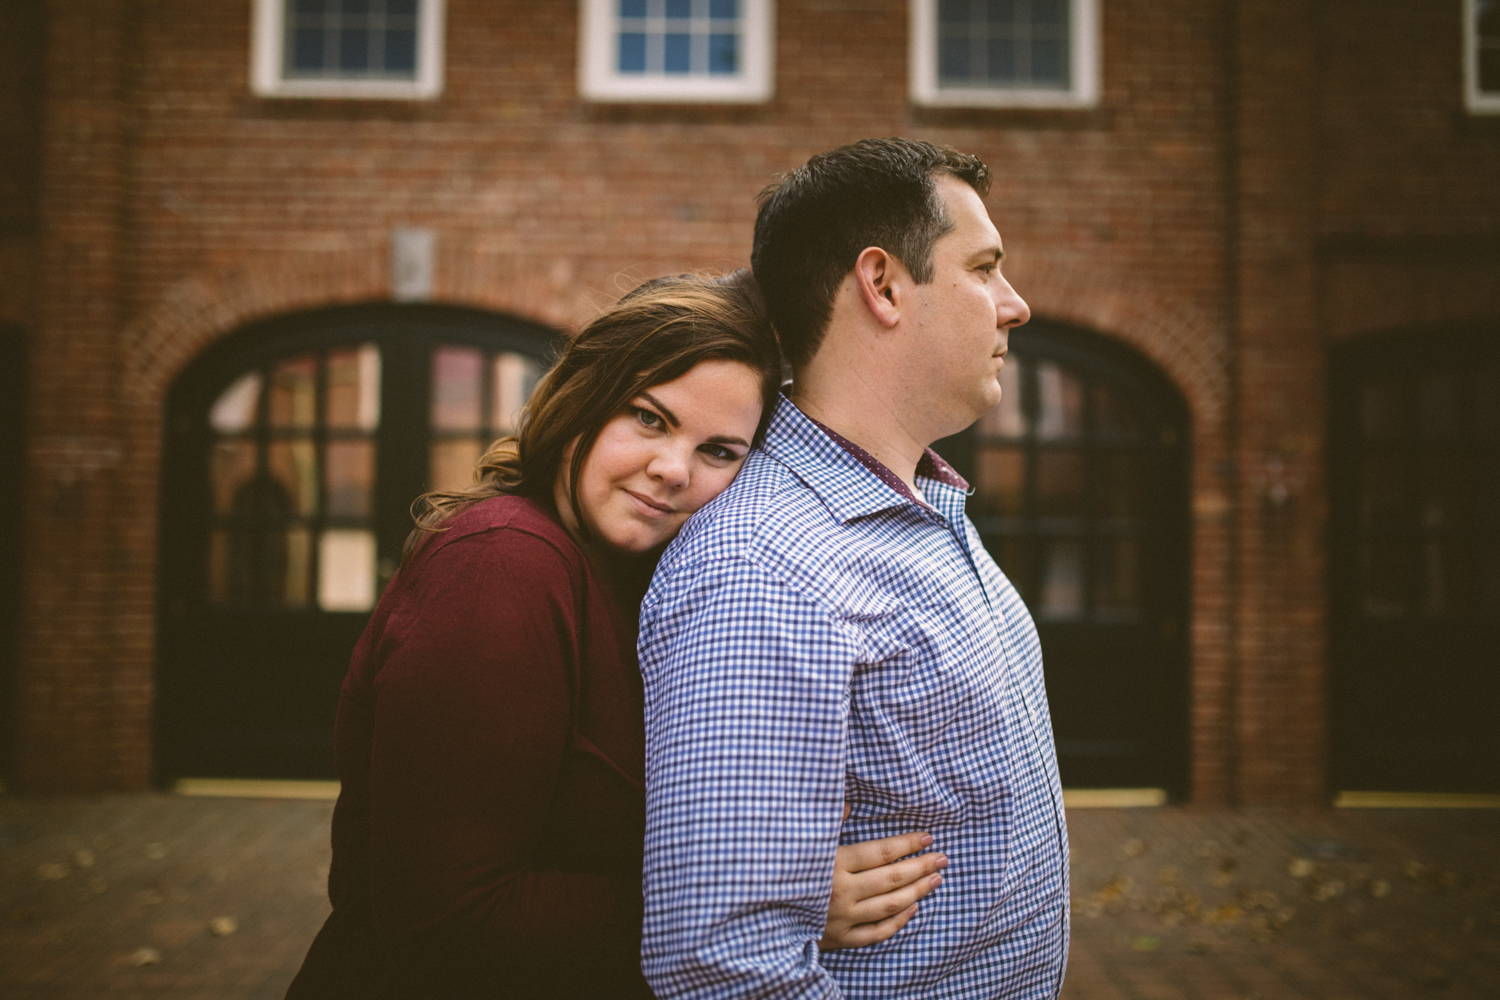 Cheekwood_Botanical_Gardens_engagement_photos-1.jpg